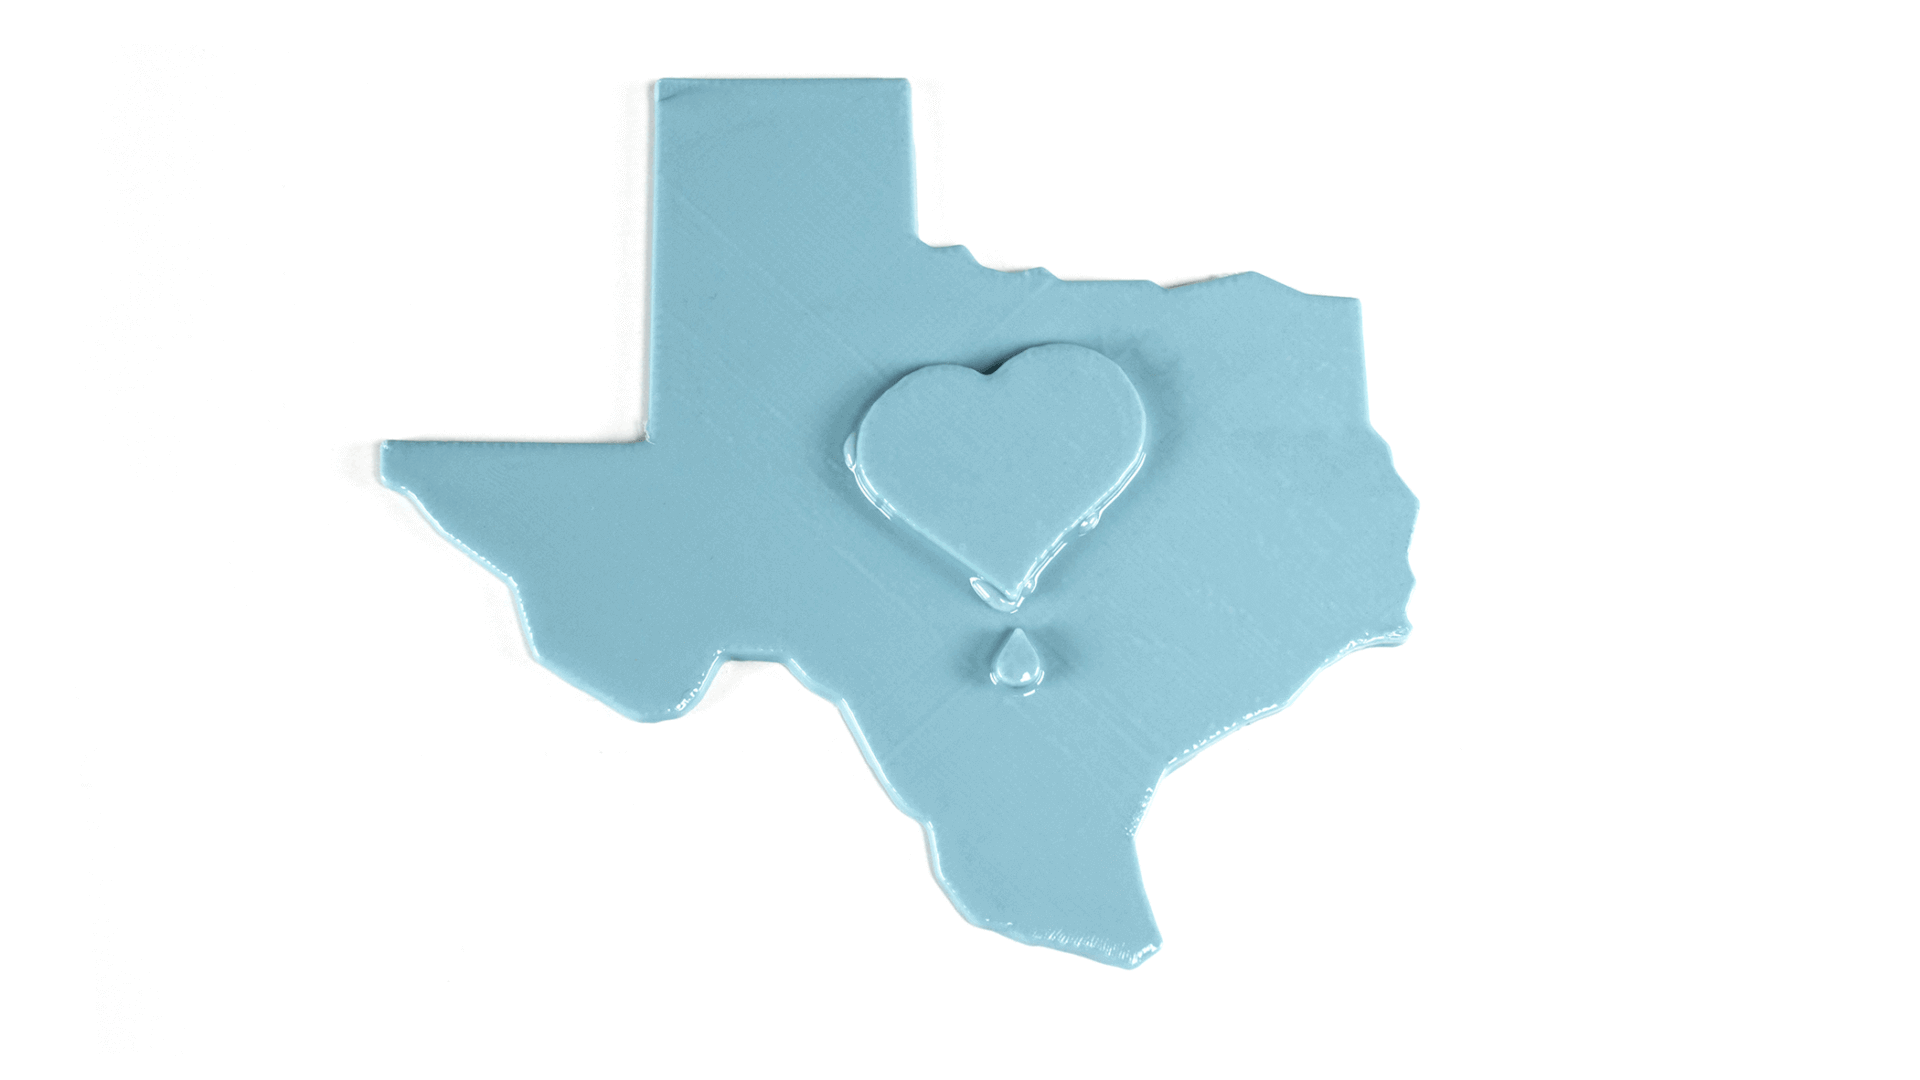 All3DP Supports Texas: 3D Printing For Disaster Relief | All3DP